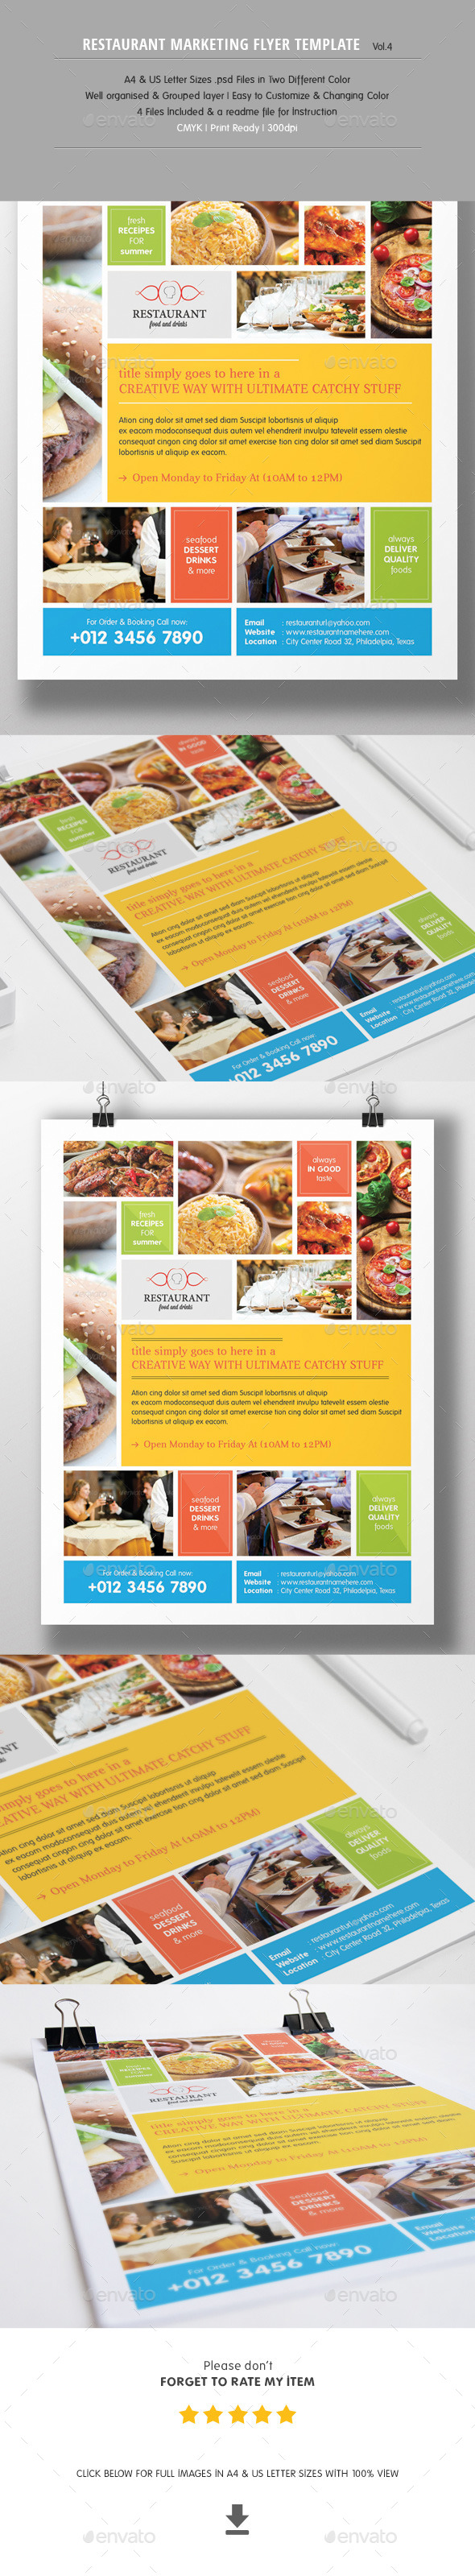 Restaurant Marketing Flyer Vol.3